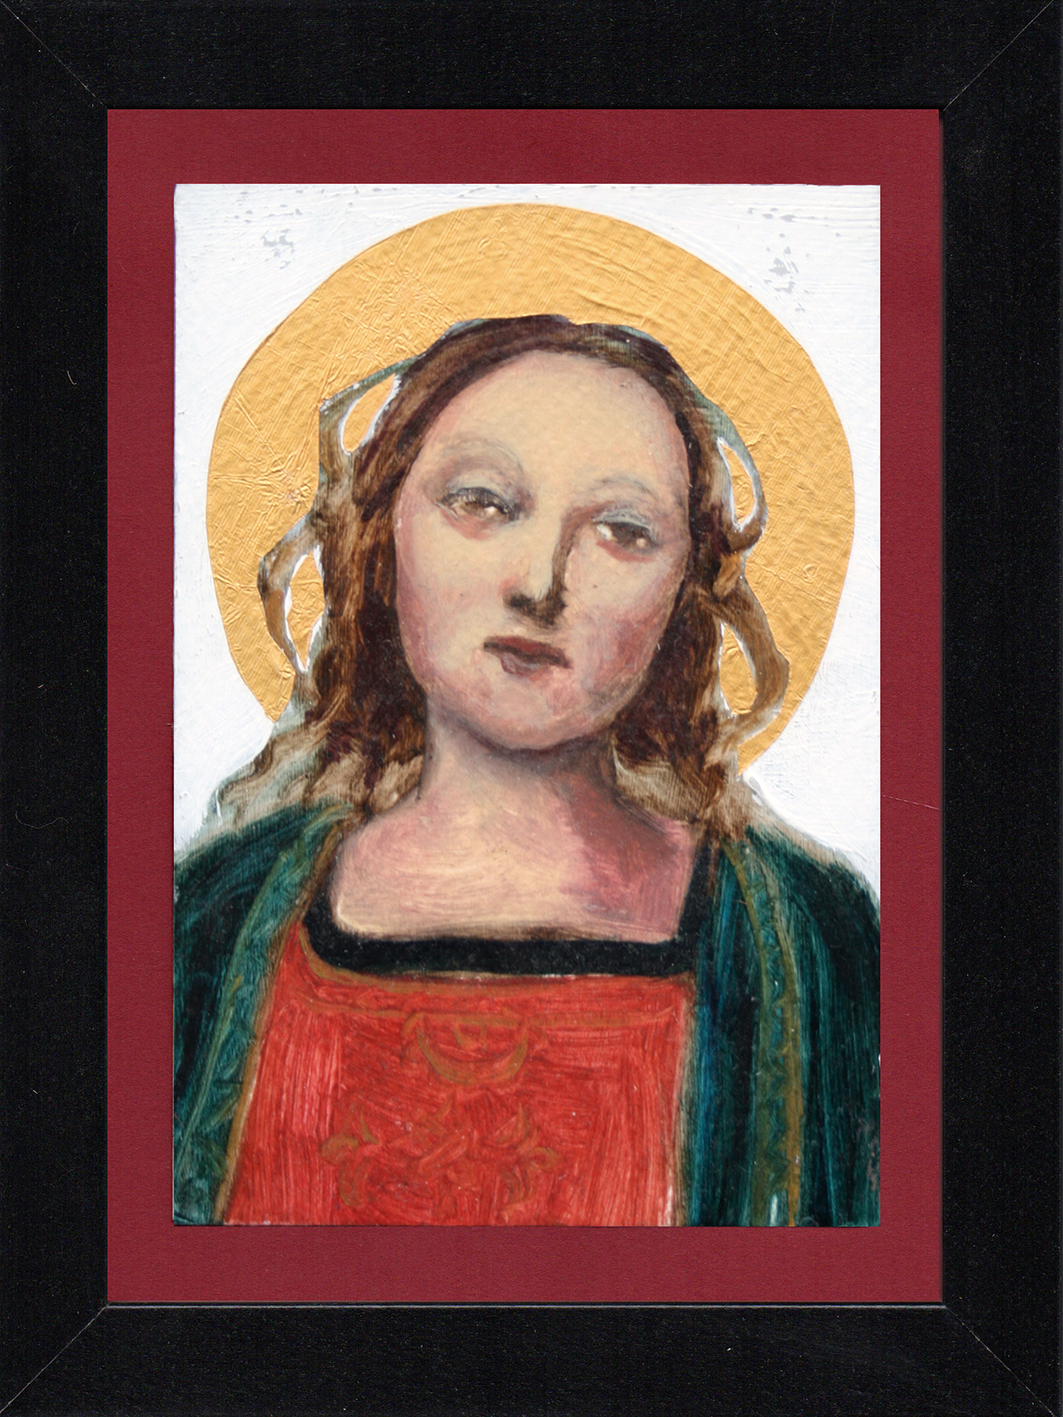 "Postcard Saint 13, oil & gold foil on paper 10.5 x 15 cm (4"" x 6""), 2016"